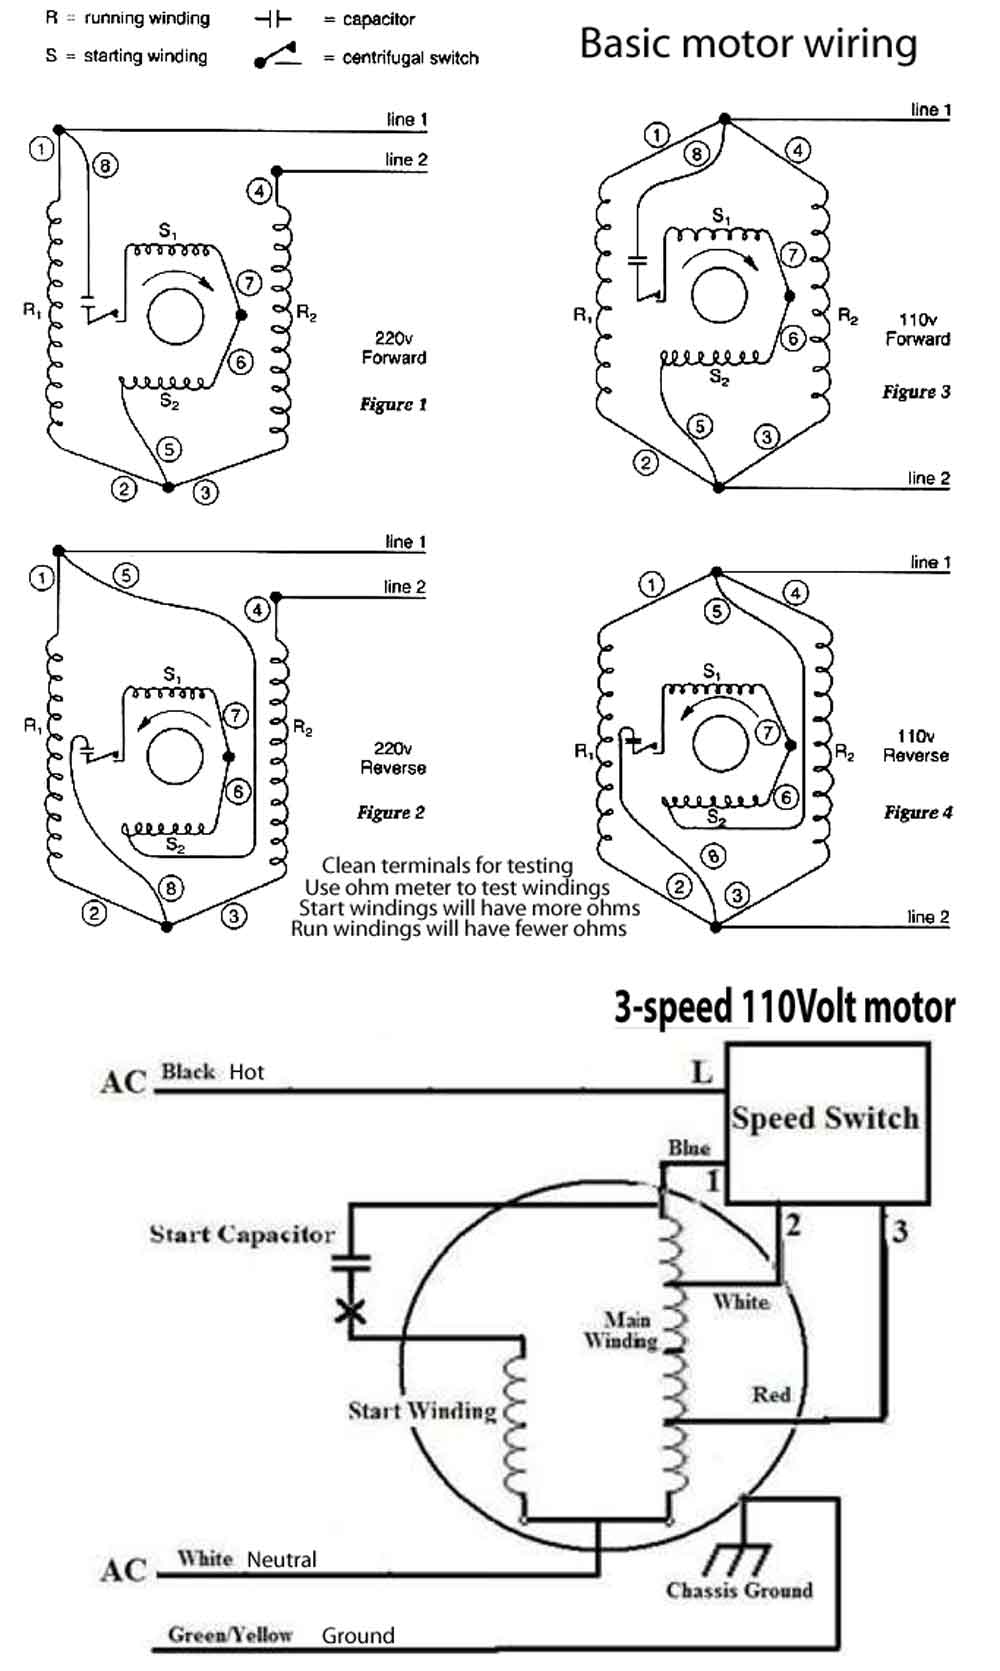 Motor wiring 500 how to wire 3 speed fan switch dayton heater wiring diagram at mifinder.co